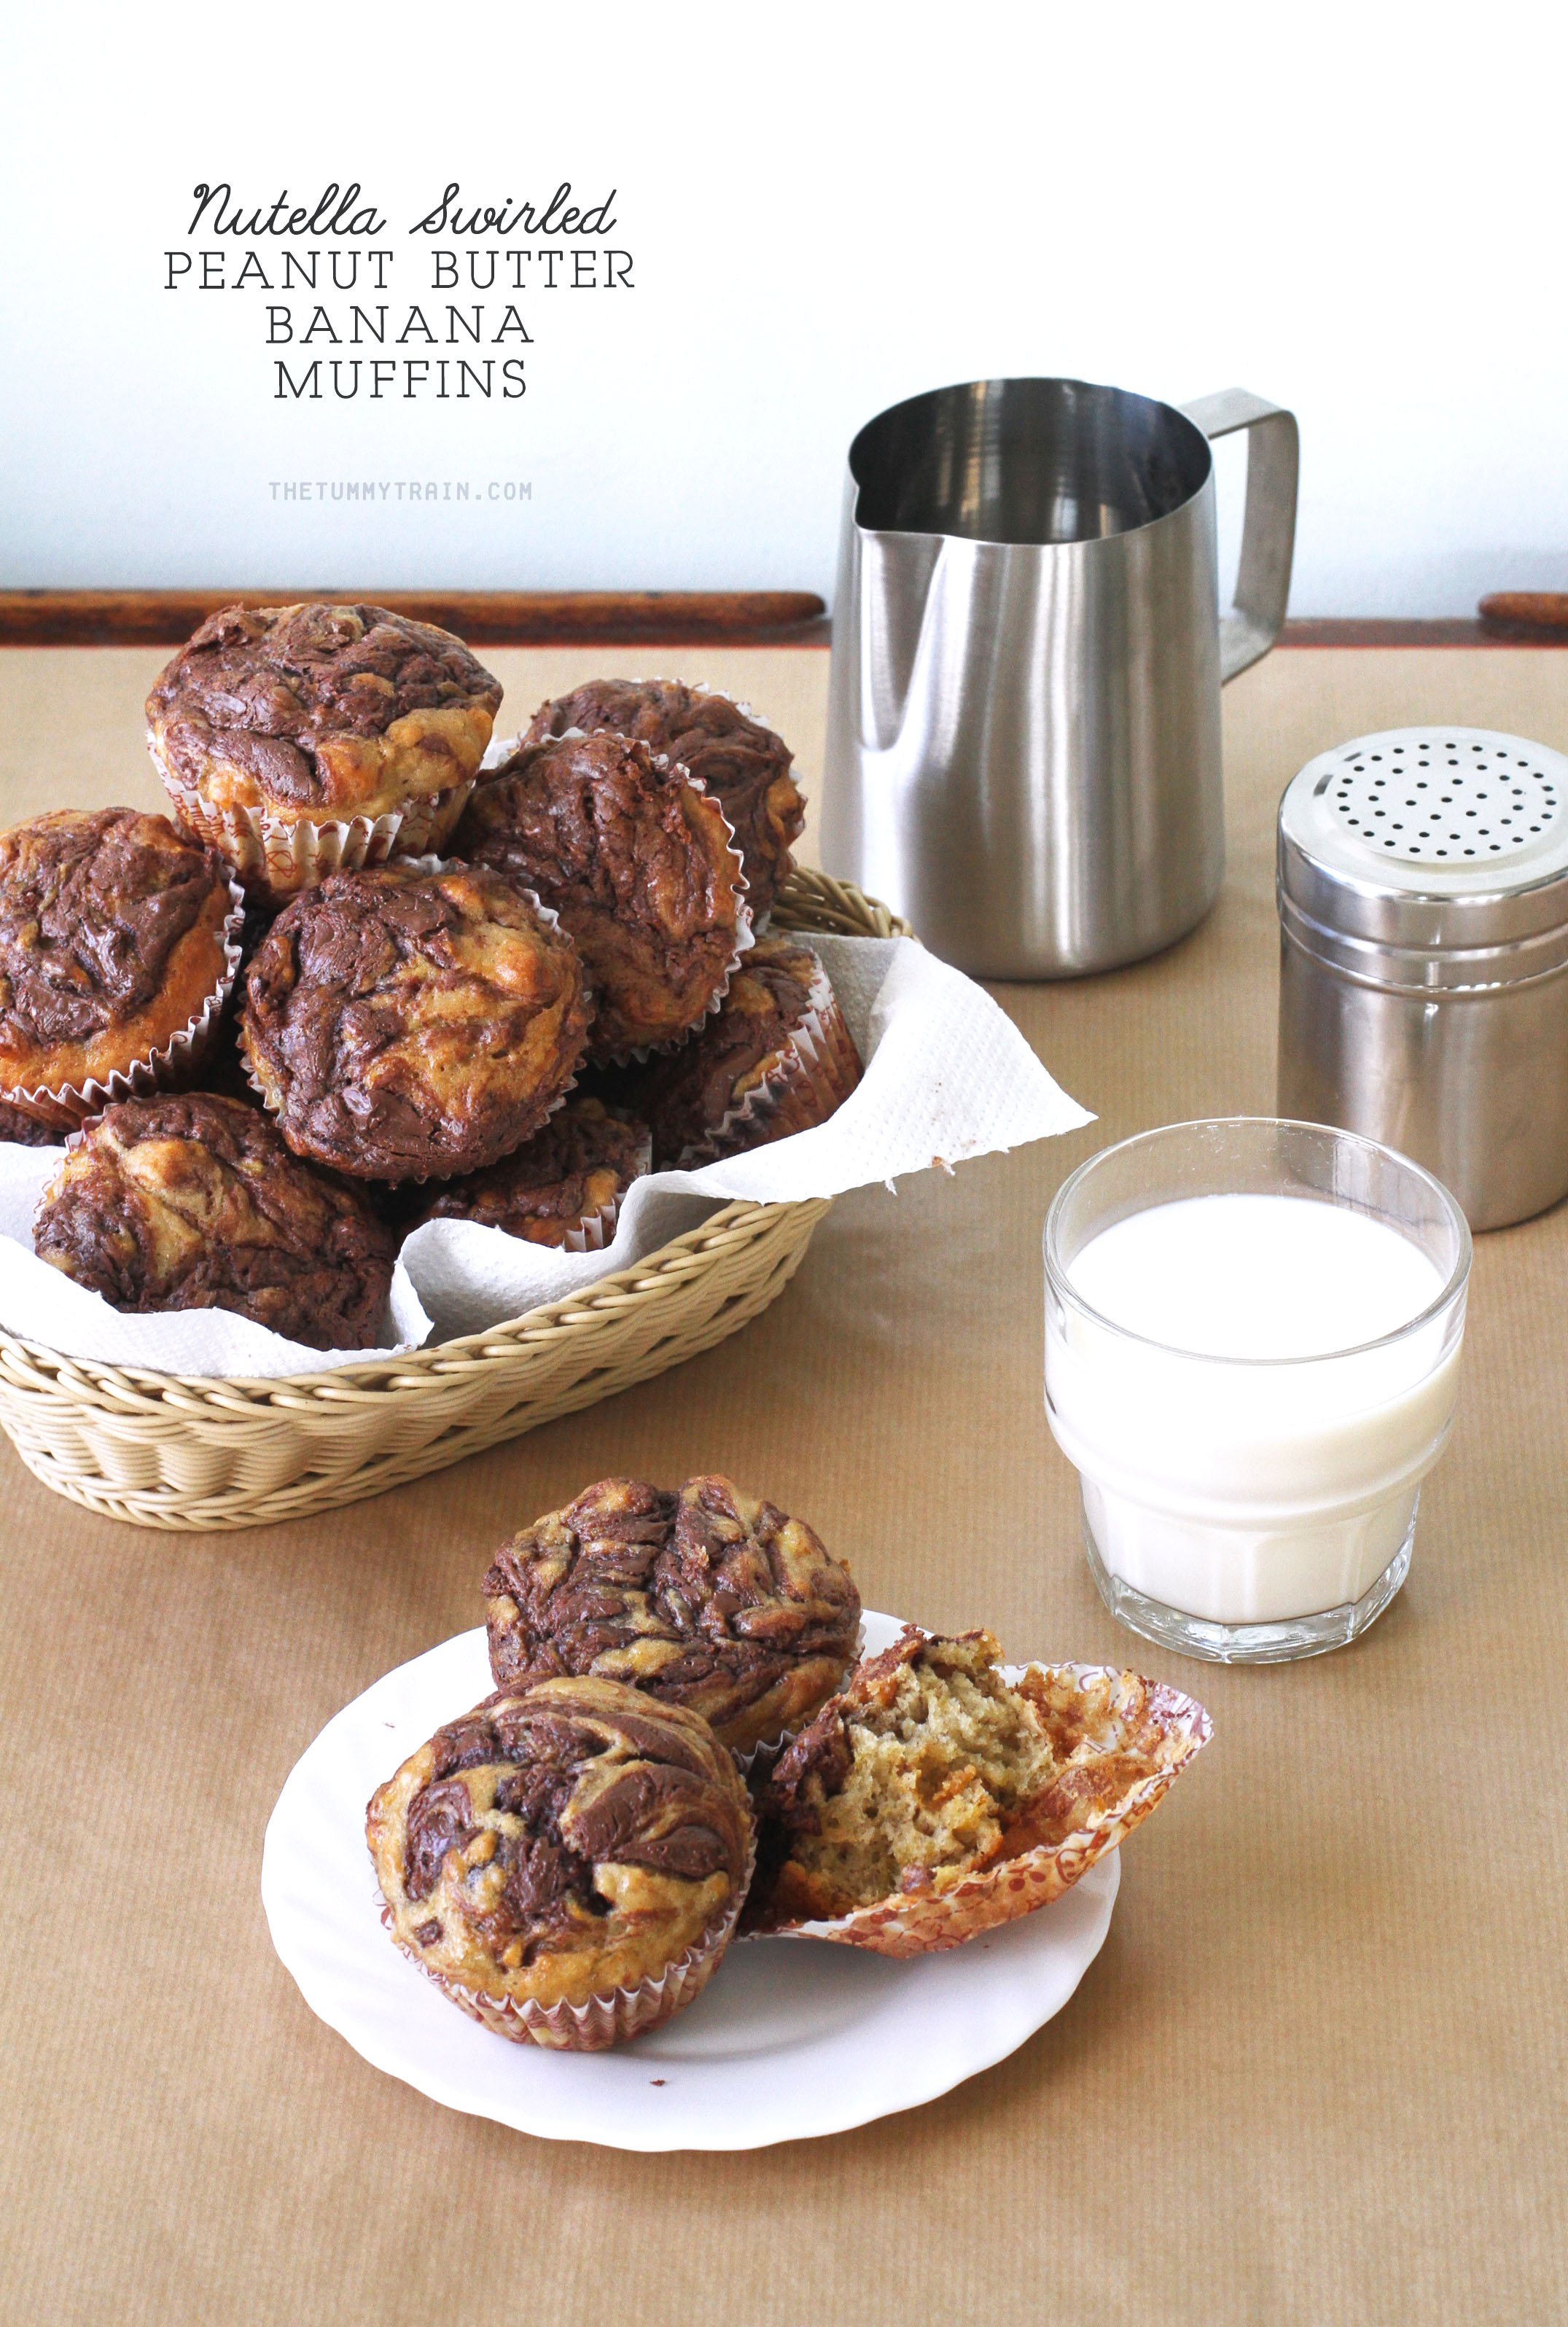 Nutella PB Banana Muffins 1 1 - Muffins with a crown of Nutella for World Nutella Day this year [VIDEO]